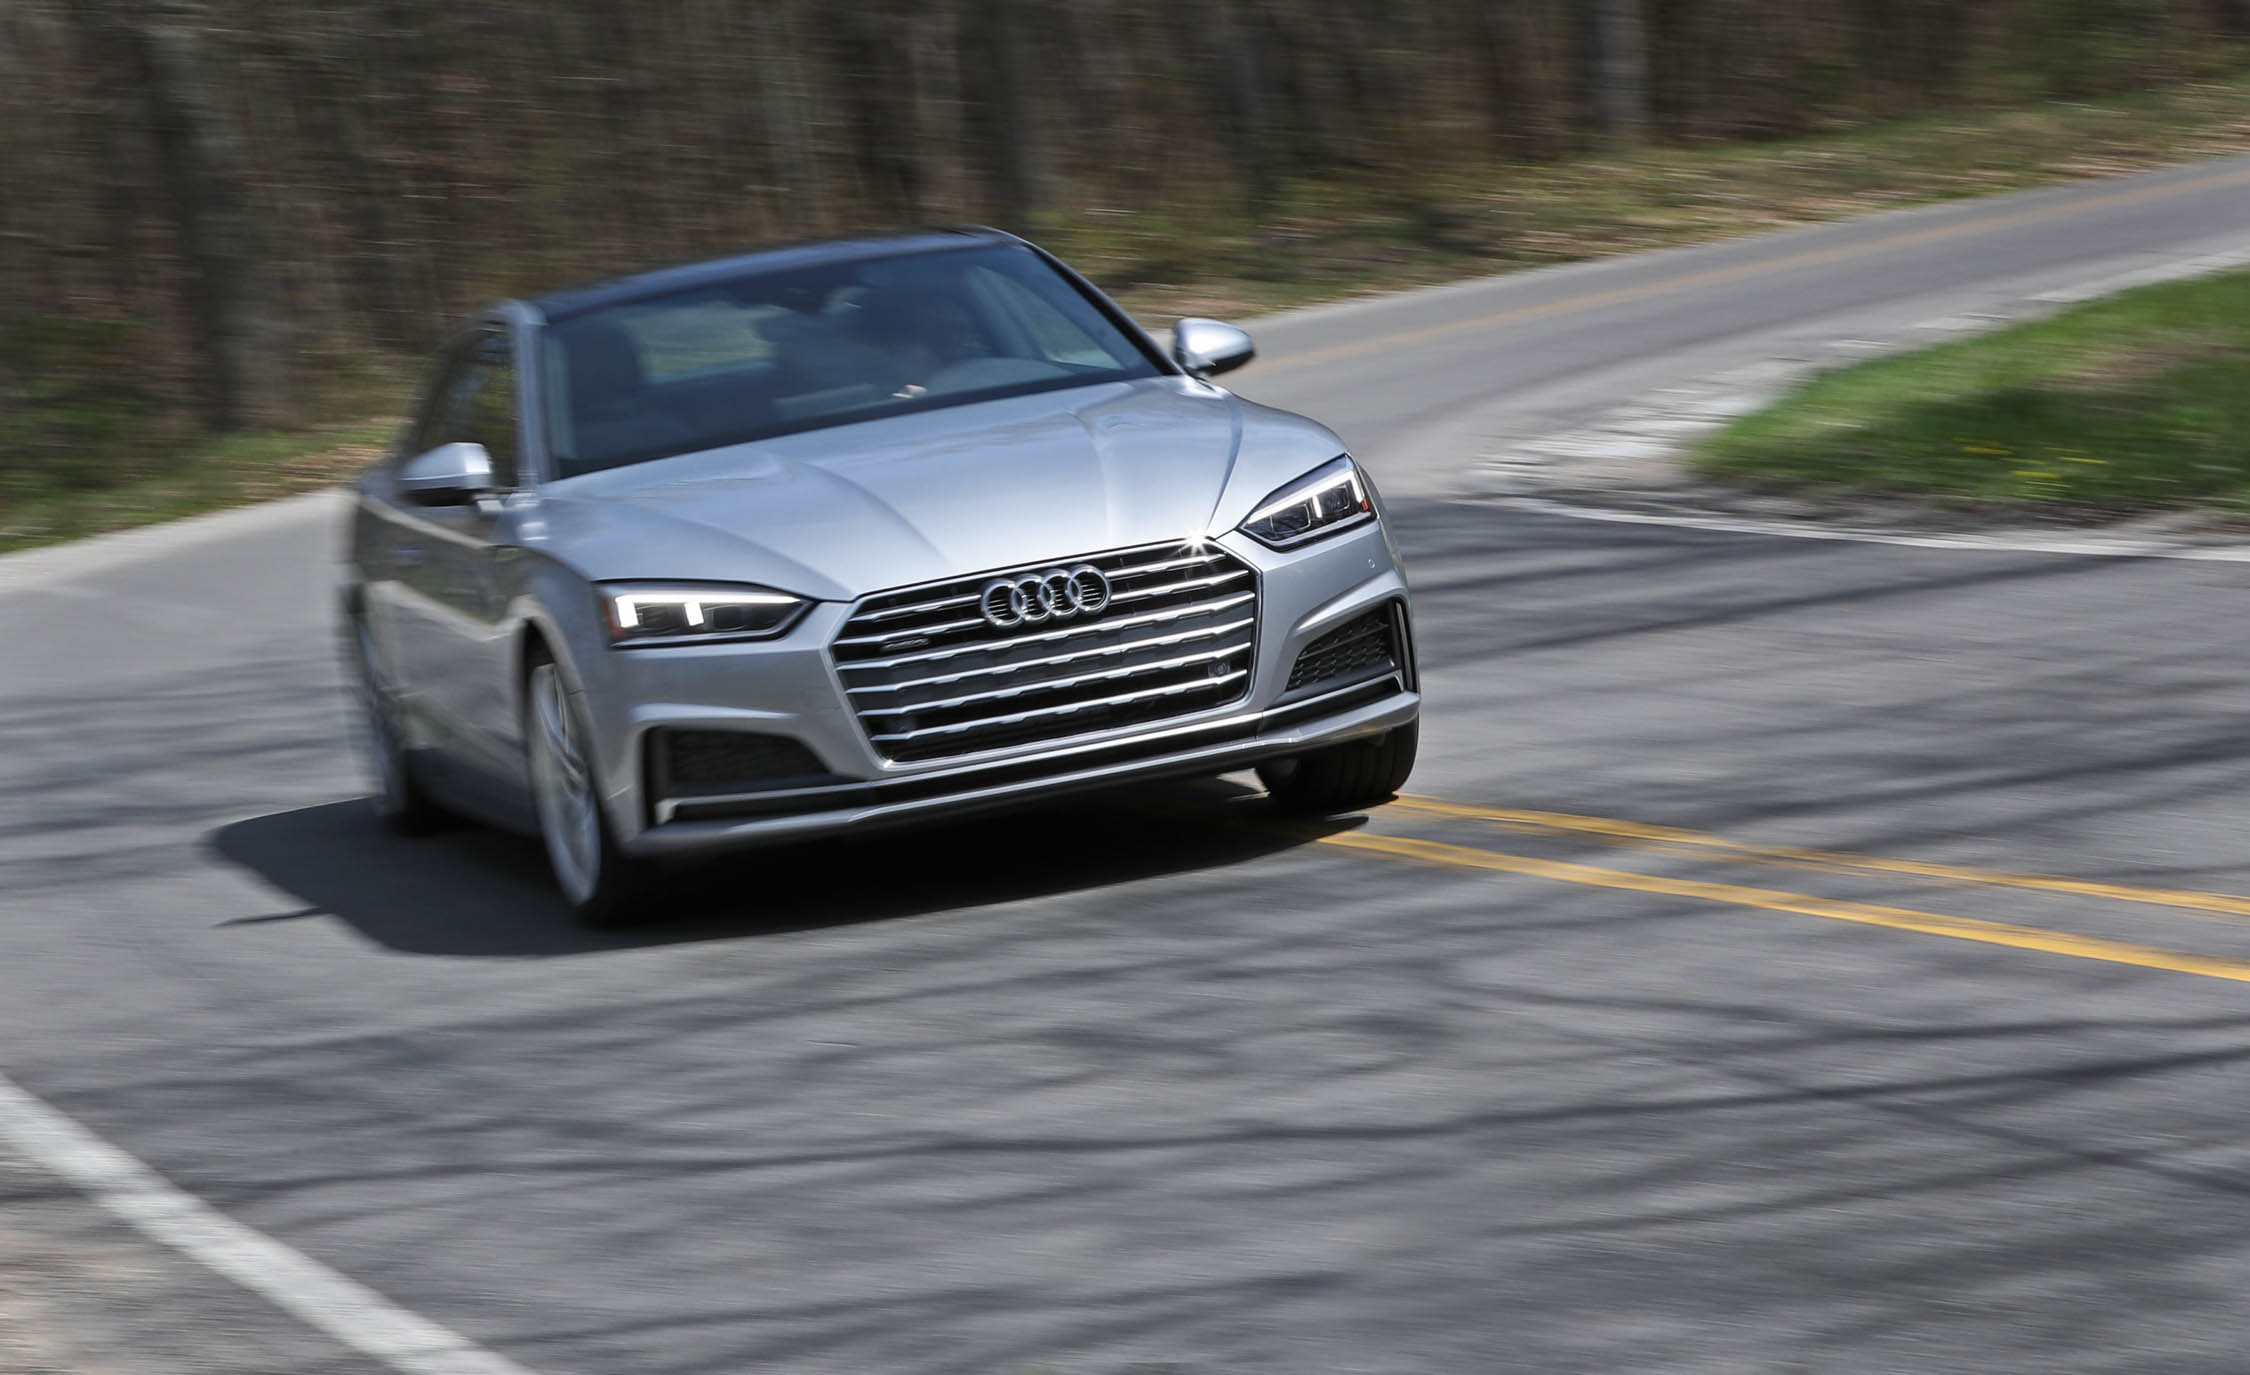 2018 Audi A5 Coupe Test Drive Front Preview (Photo 43 of 50)